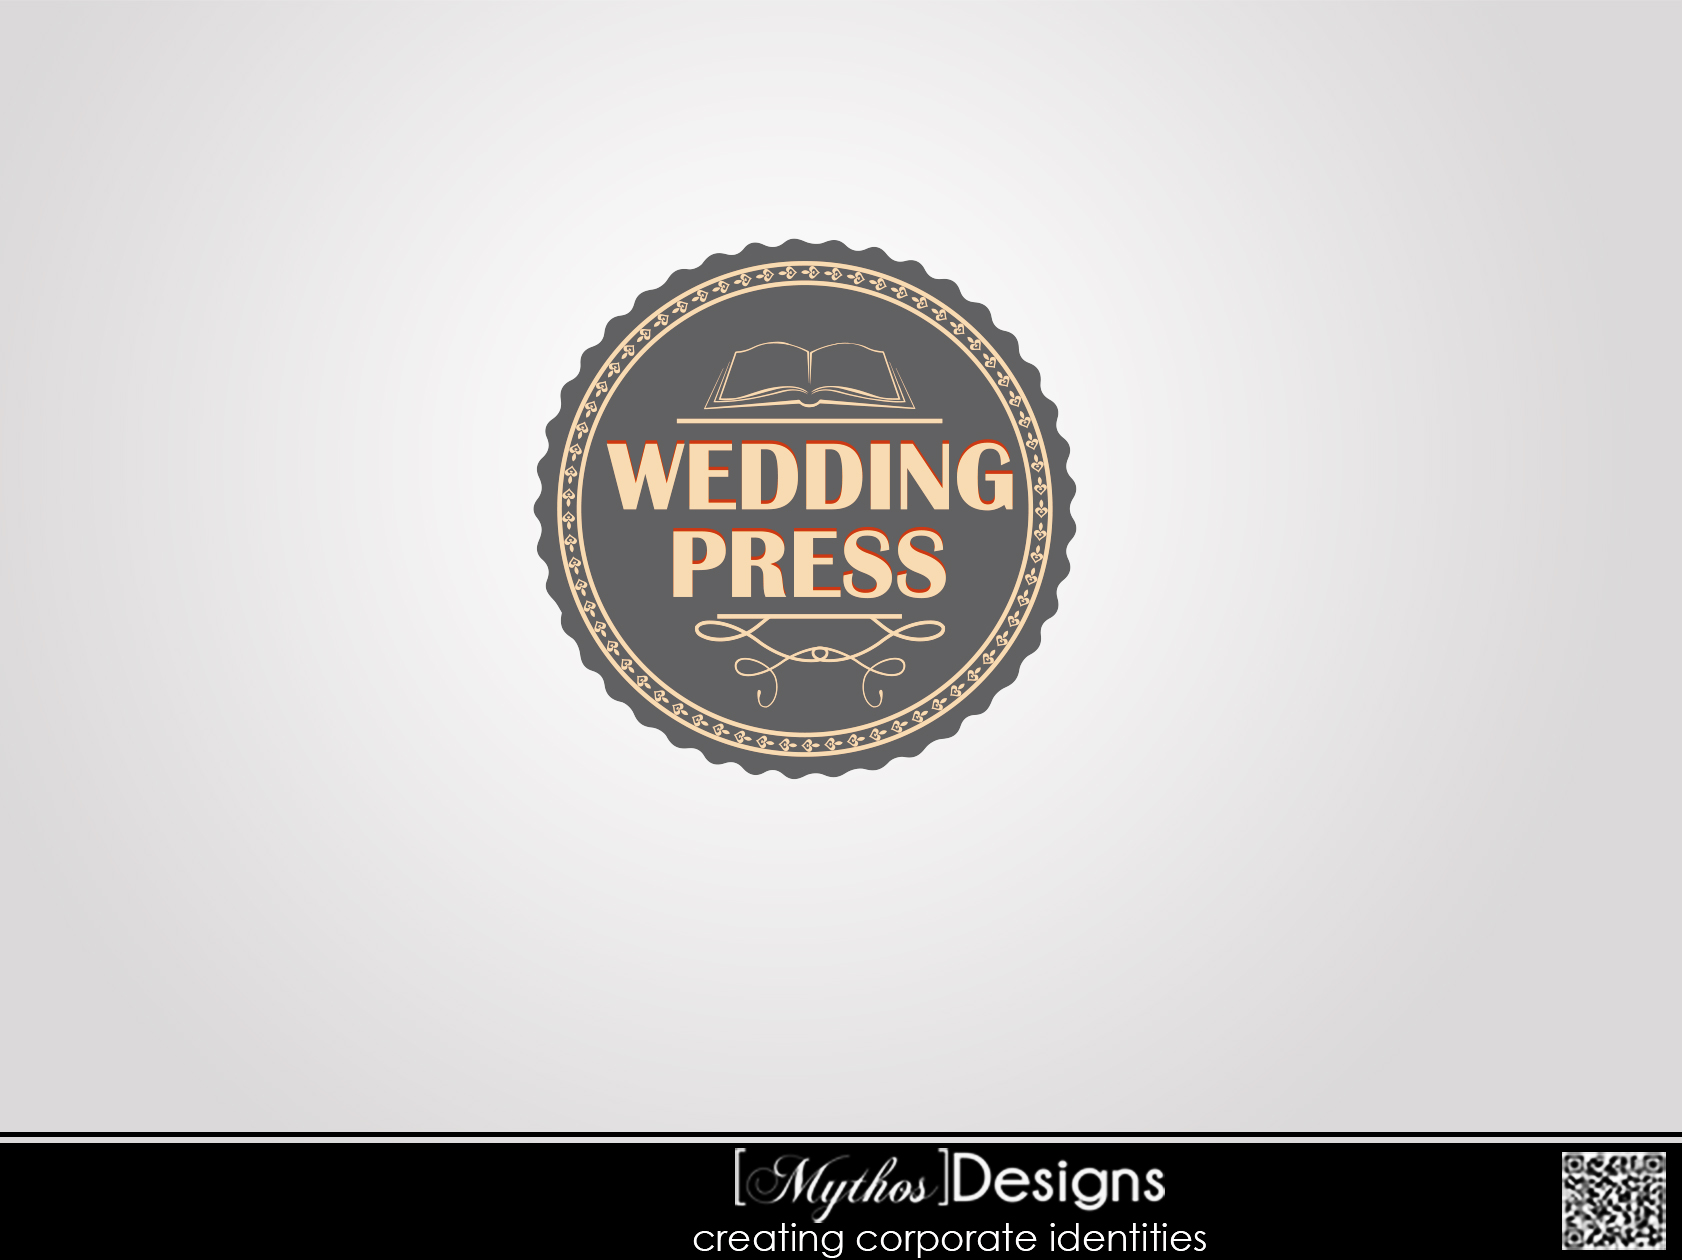 Logo Design by Mythos Designs - Entry No. 166 in the Logo Design Contest Wedding Writes Logo Design.